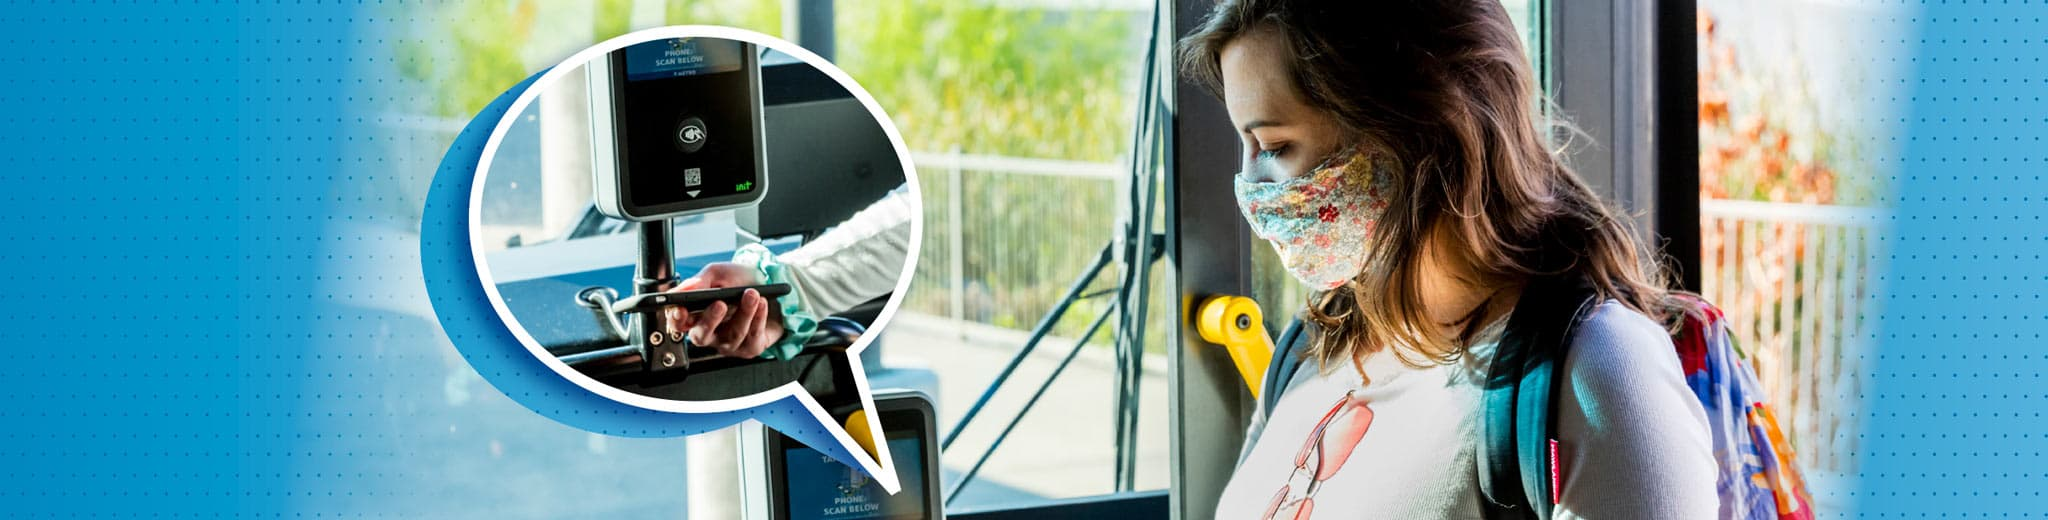 Banner image with an image of a young woman using the mobile app on a Capital Metro bus scanner